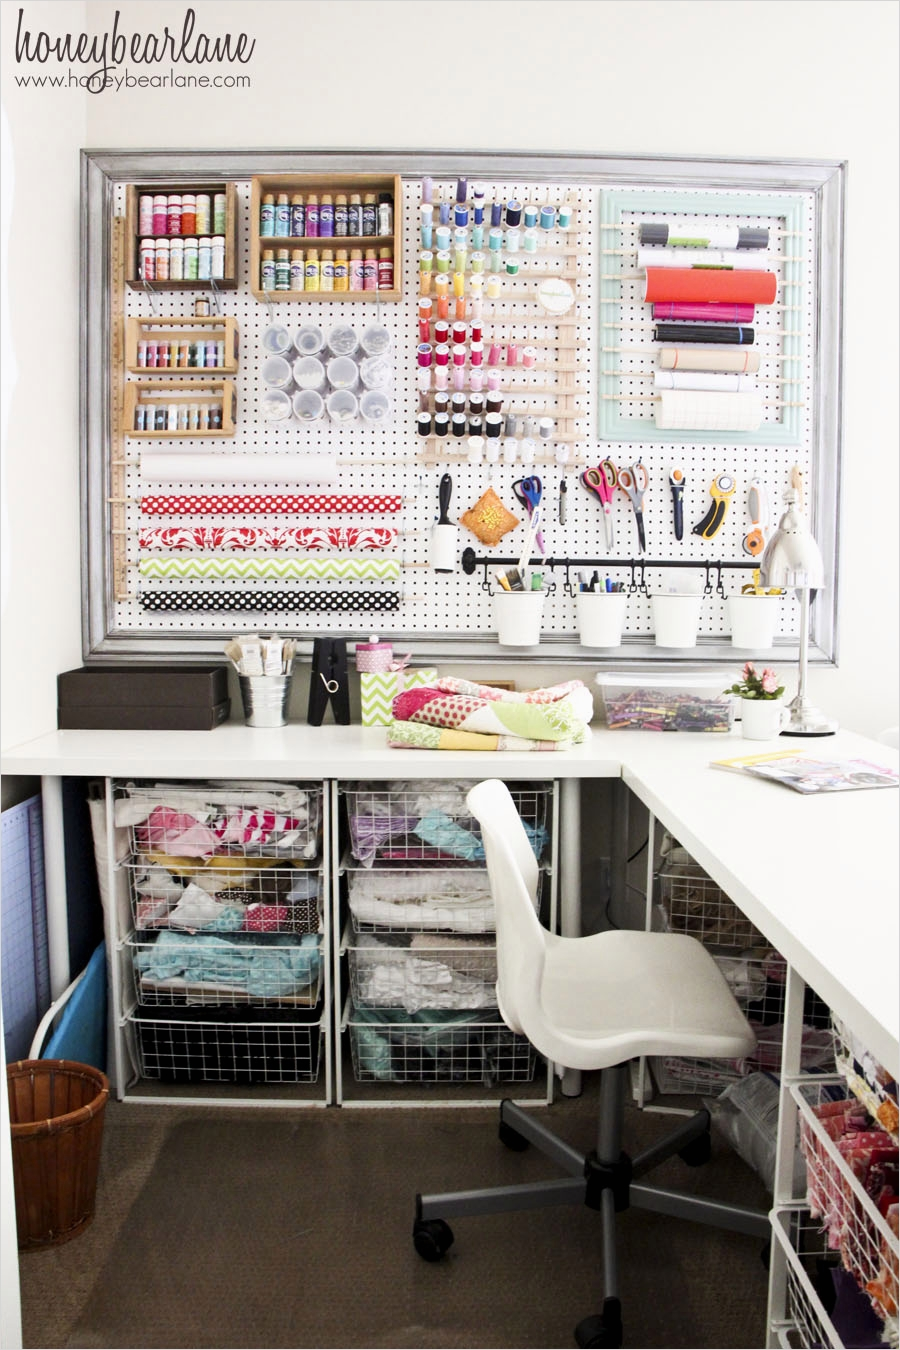 Sewing Room Ideas for Small Spaces 53 Craft Room Reveal Honeybear Lane 5